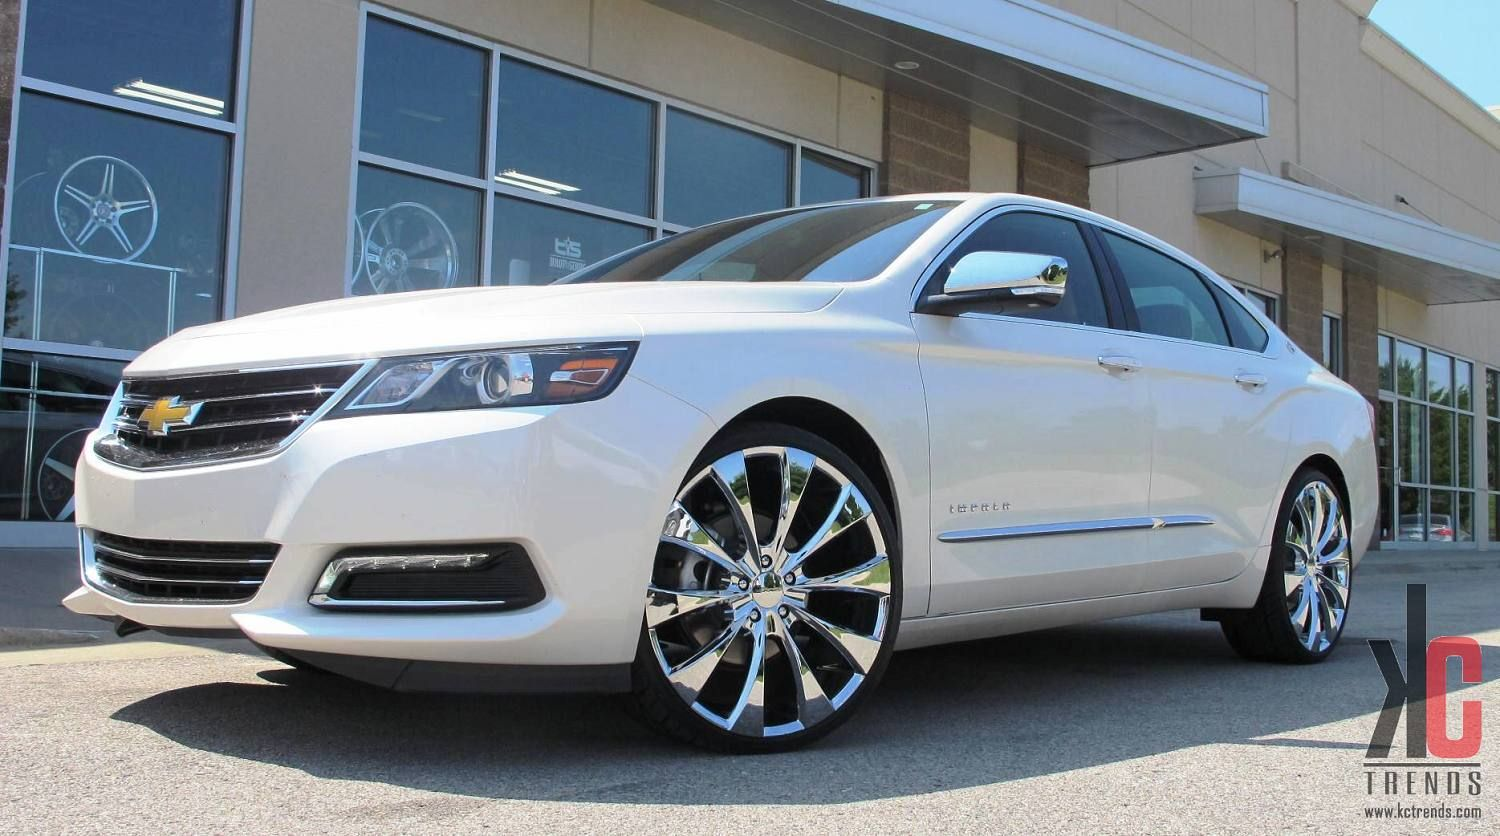 silver 2015 chevy impala on 22 rims | click for full image) | cars ...